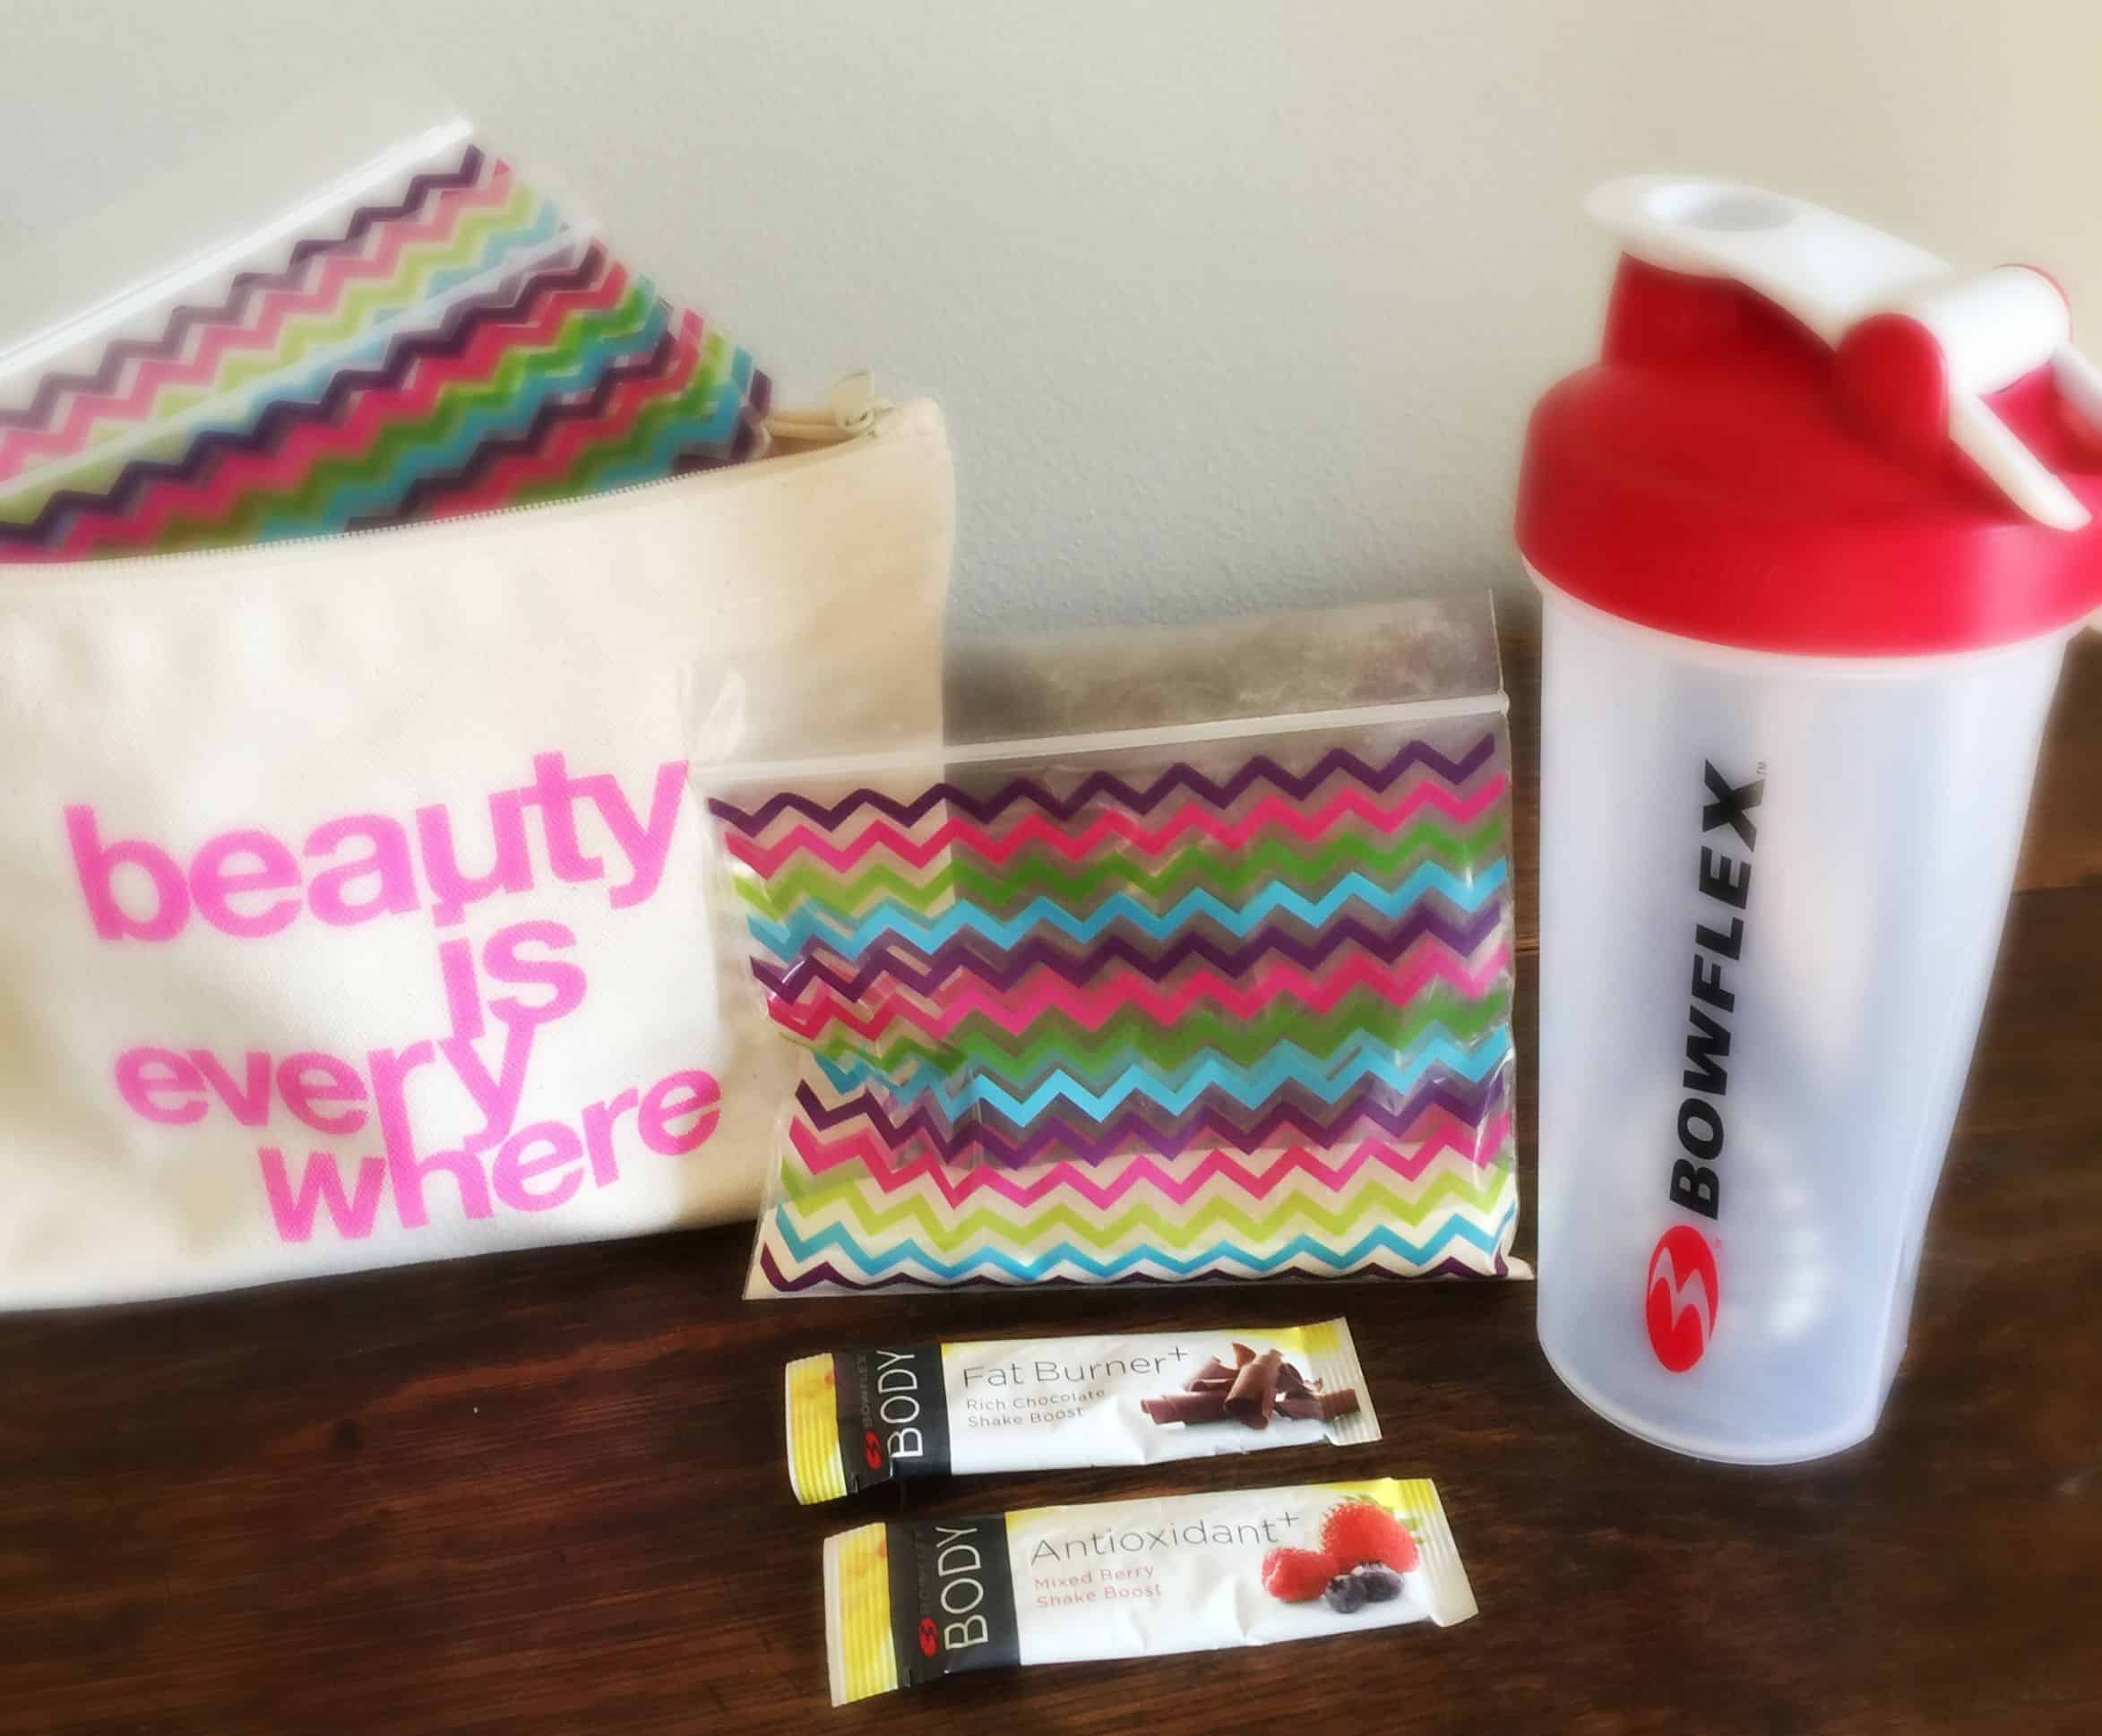 blender_bottle_bowflex